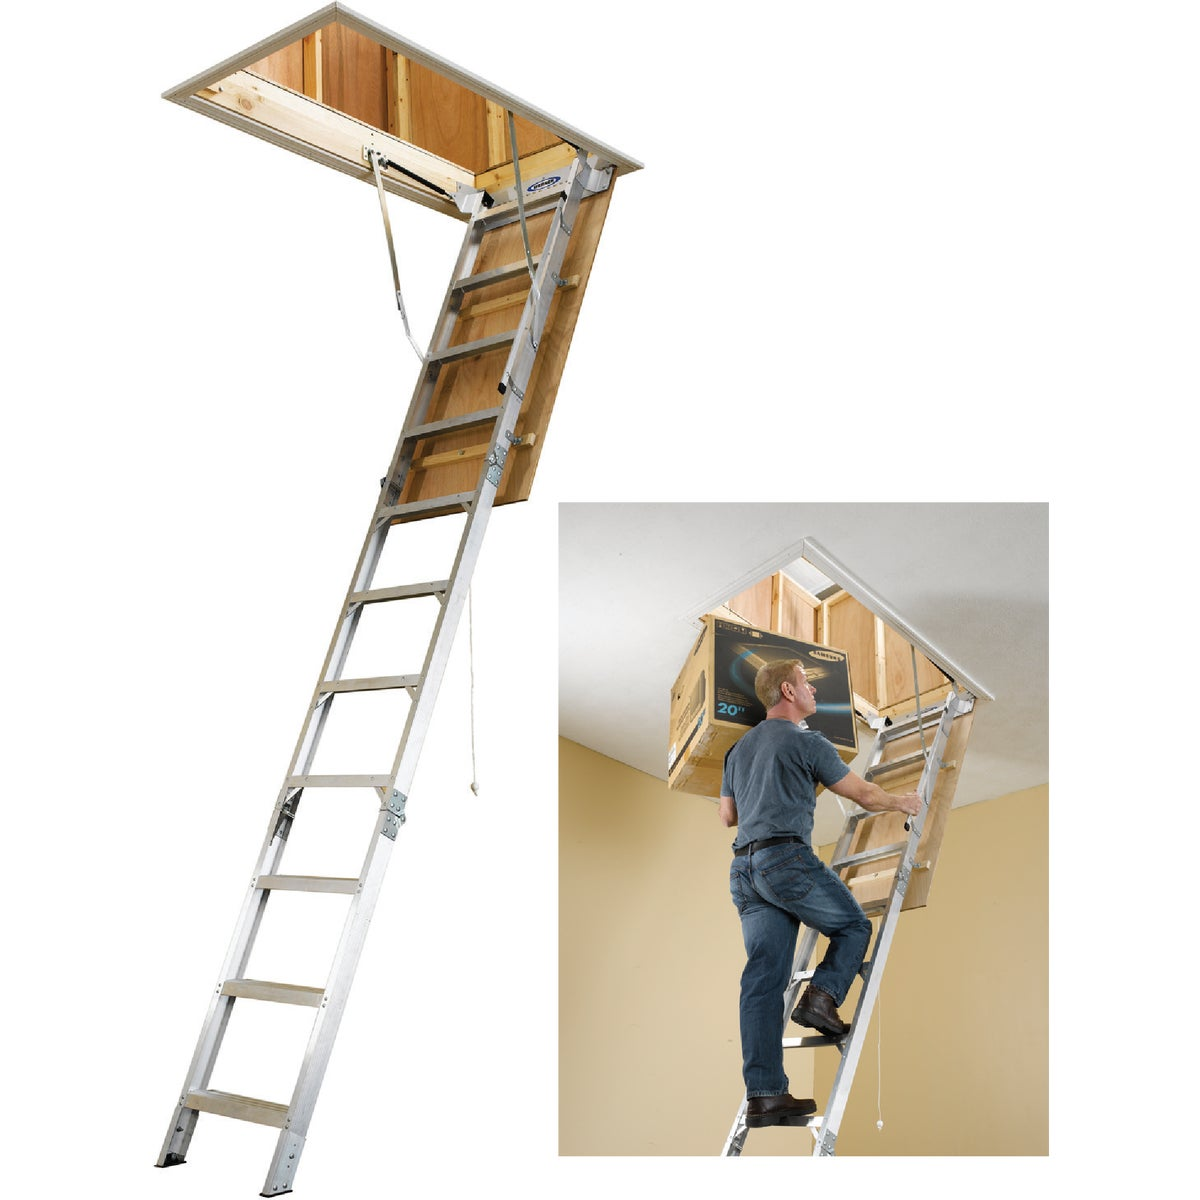 UNIV ALUM ATTIC LADDER - AH2510 by Werner Ladder